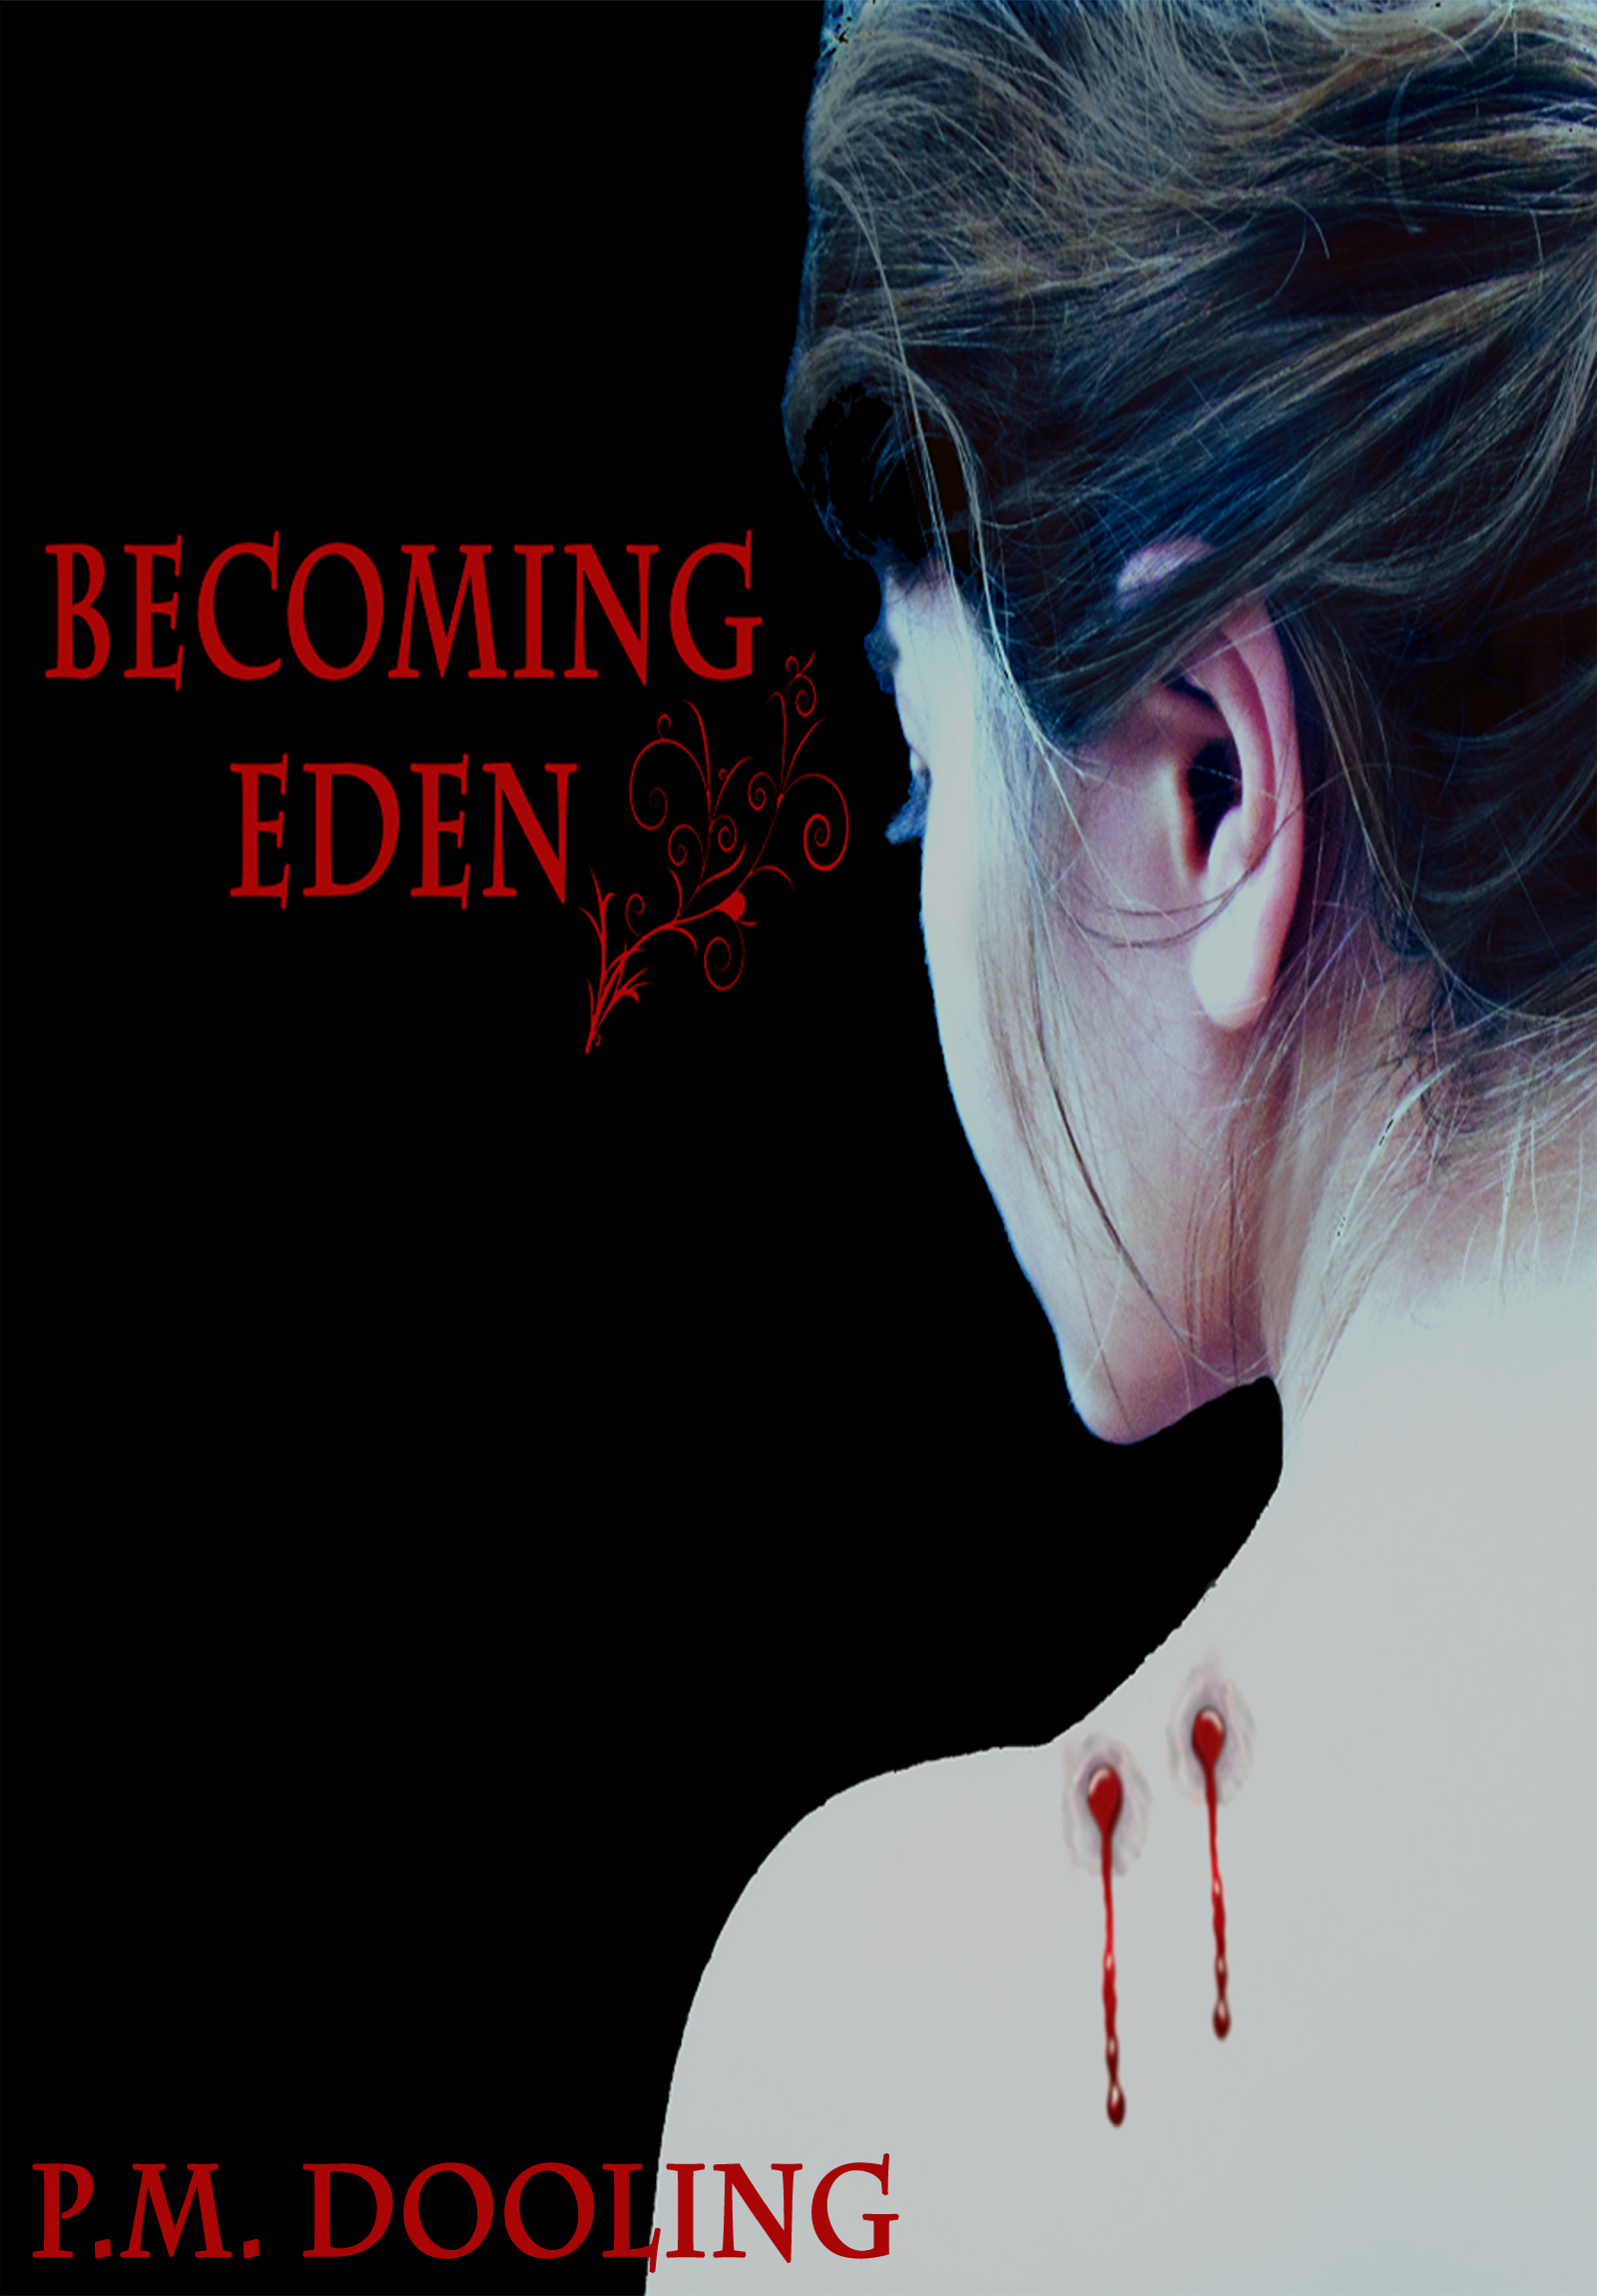 Becoming Eden